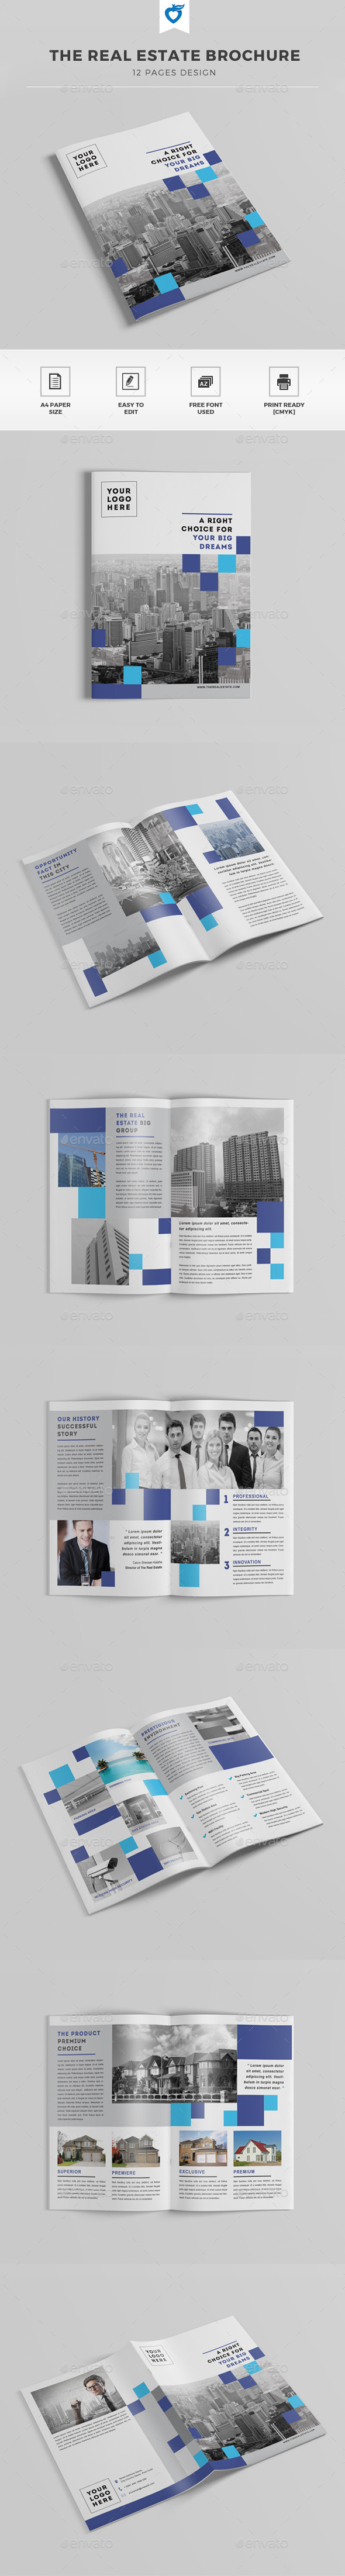 GraphicRiver The Real Estate Brochure 11493992